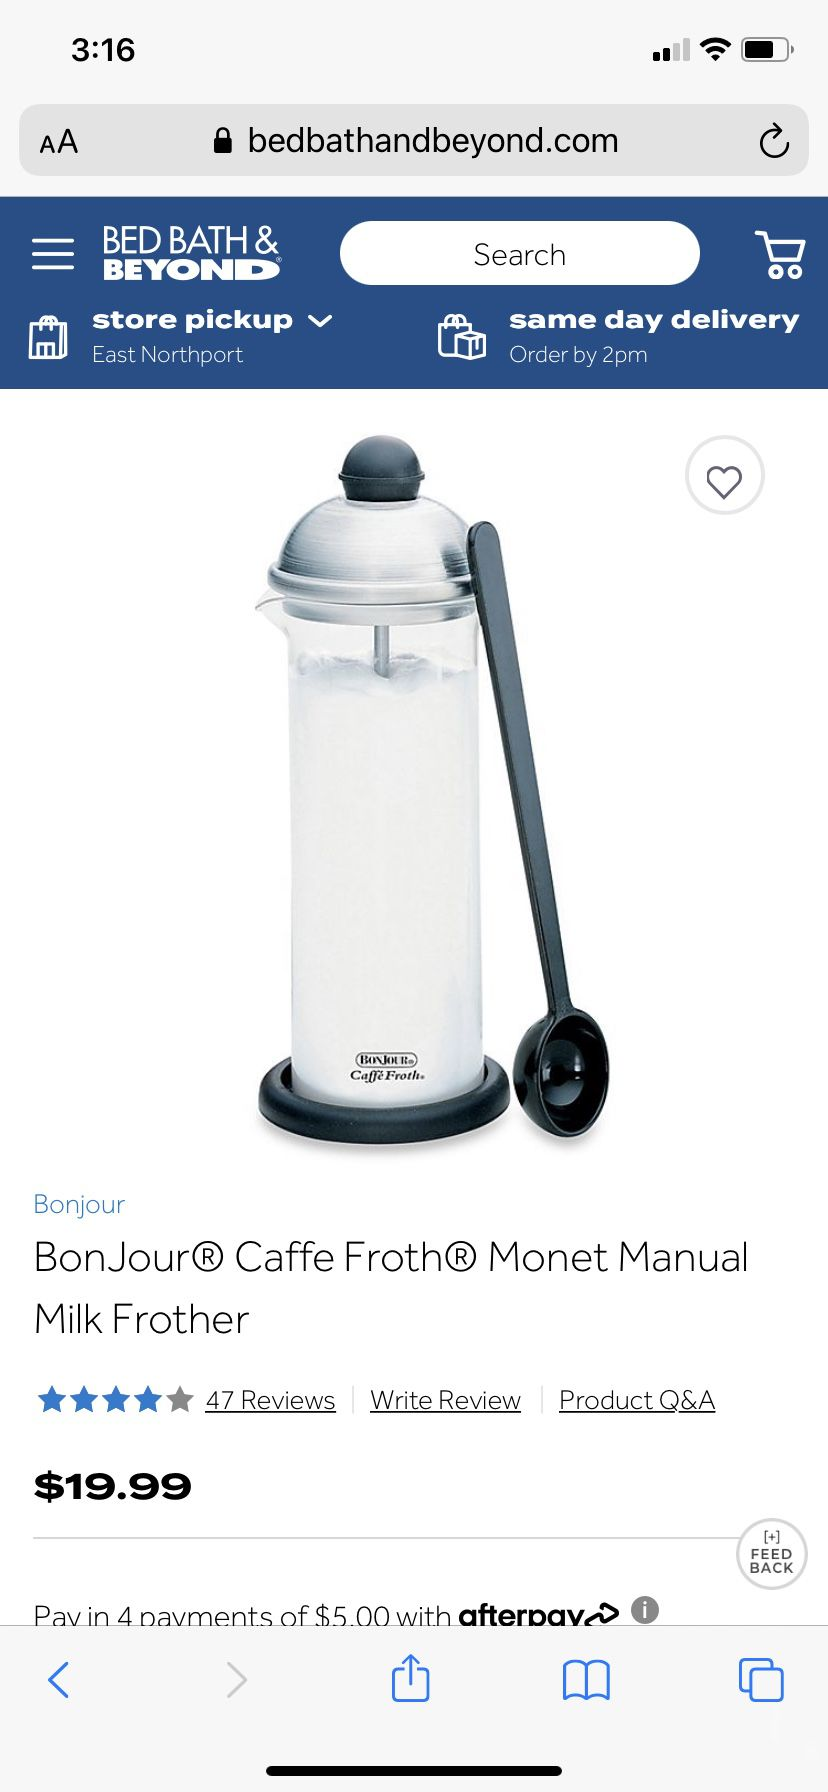 Caffe Froth Monet